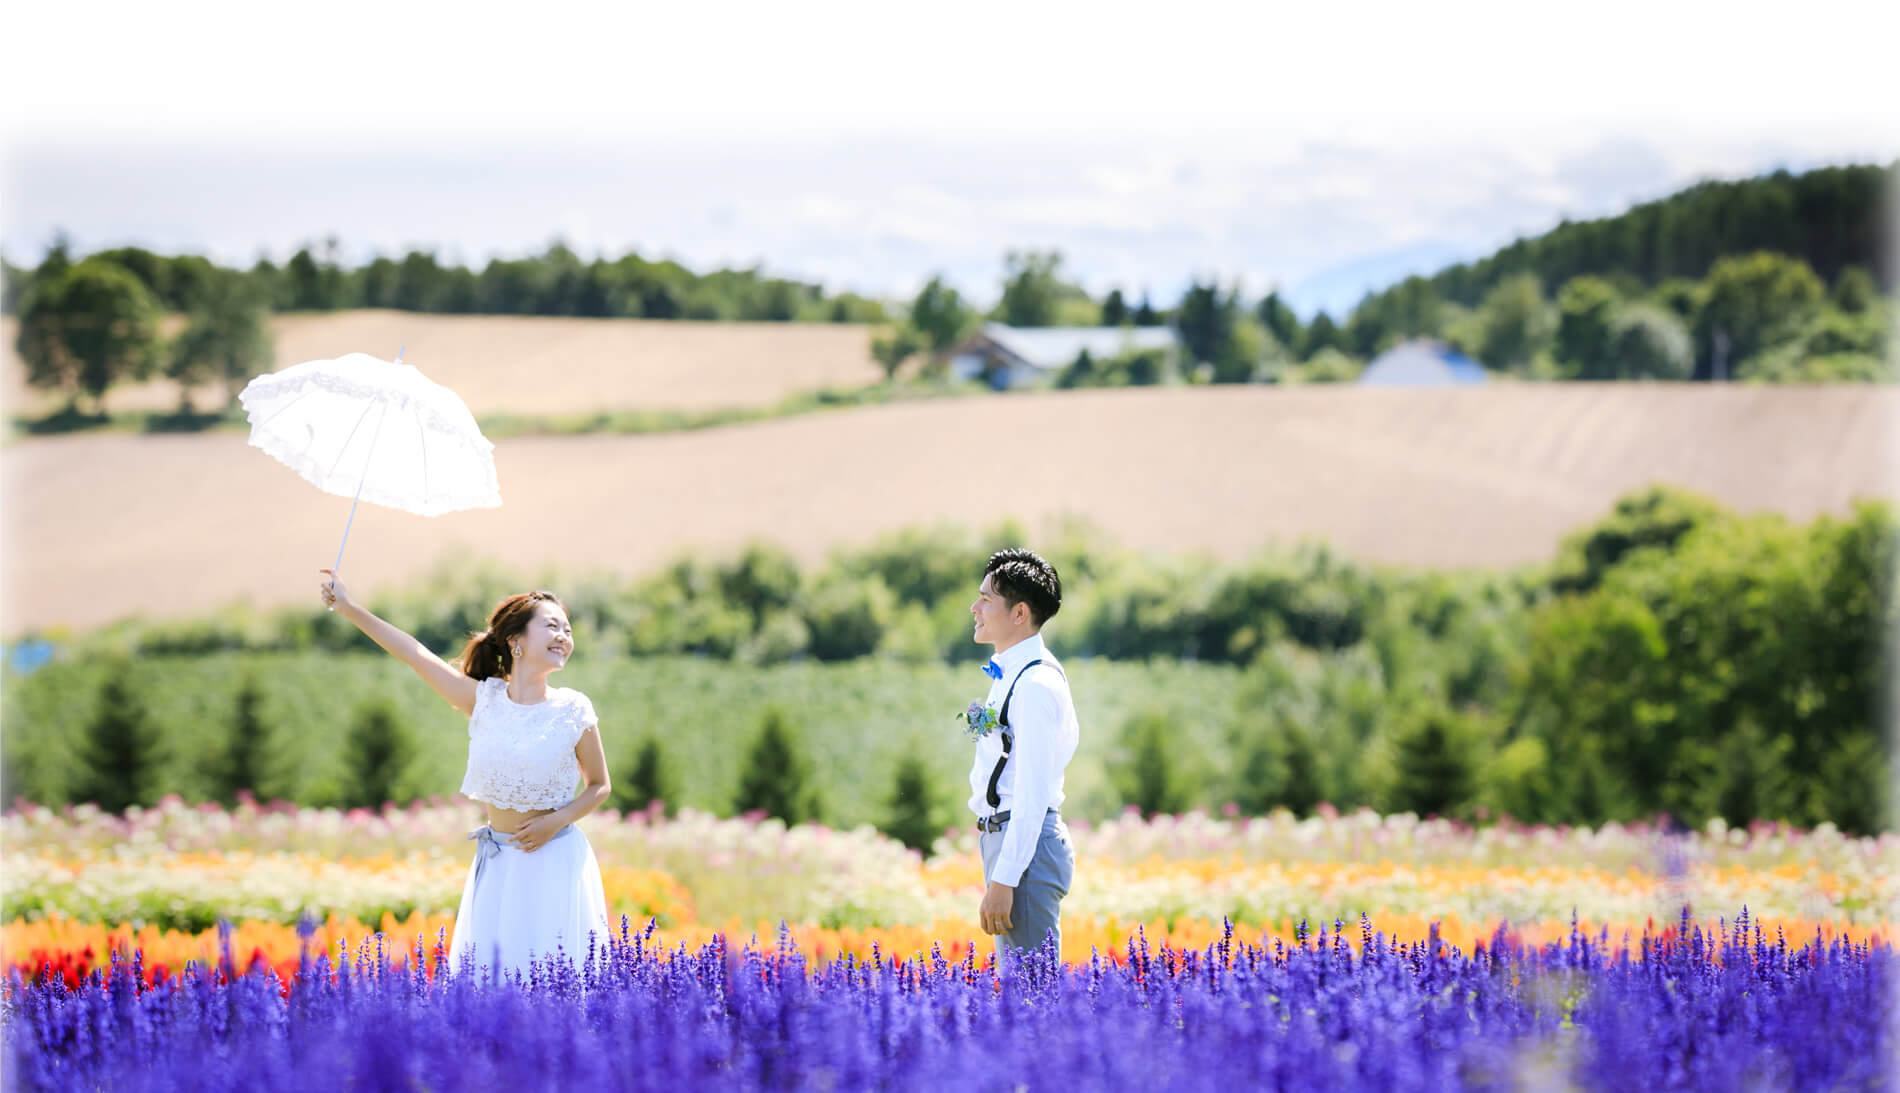 furano location outdoor photograph